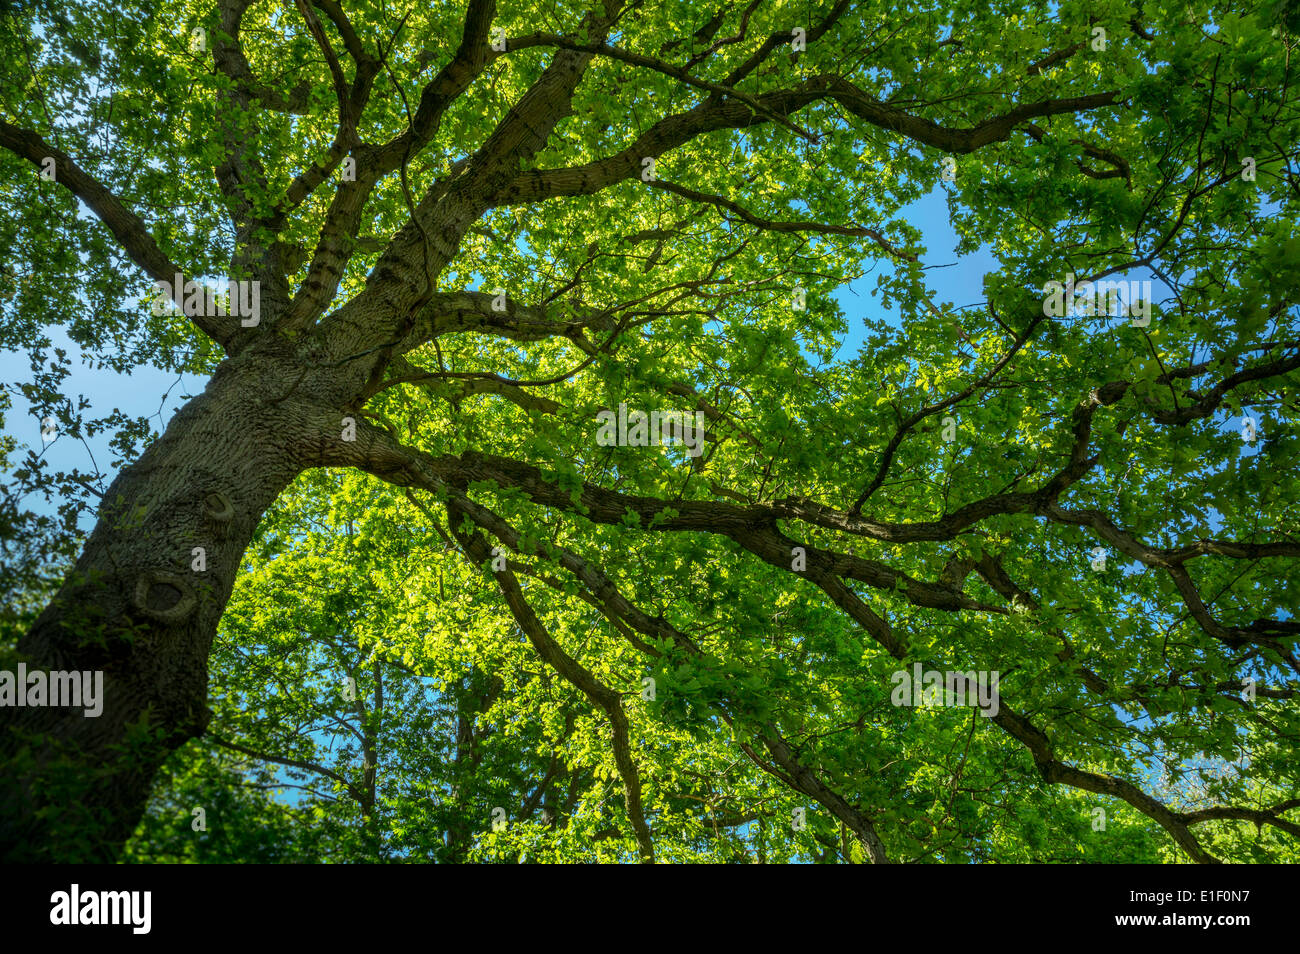 The view beneath the Canopy of a huge English Oak tree - Stock Image